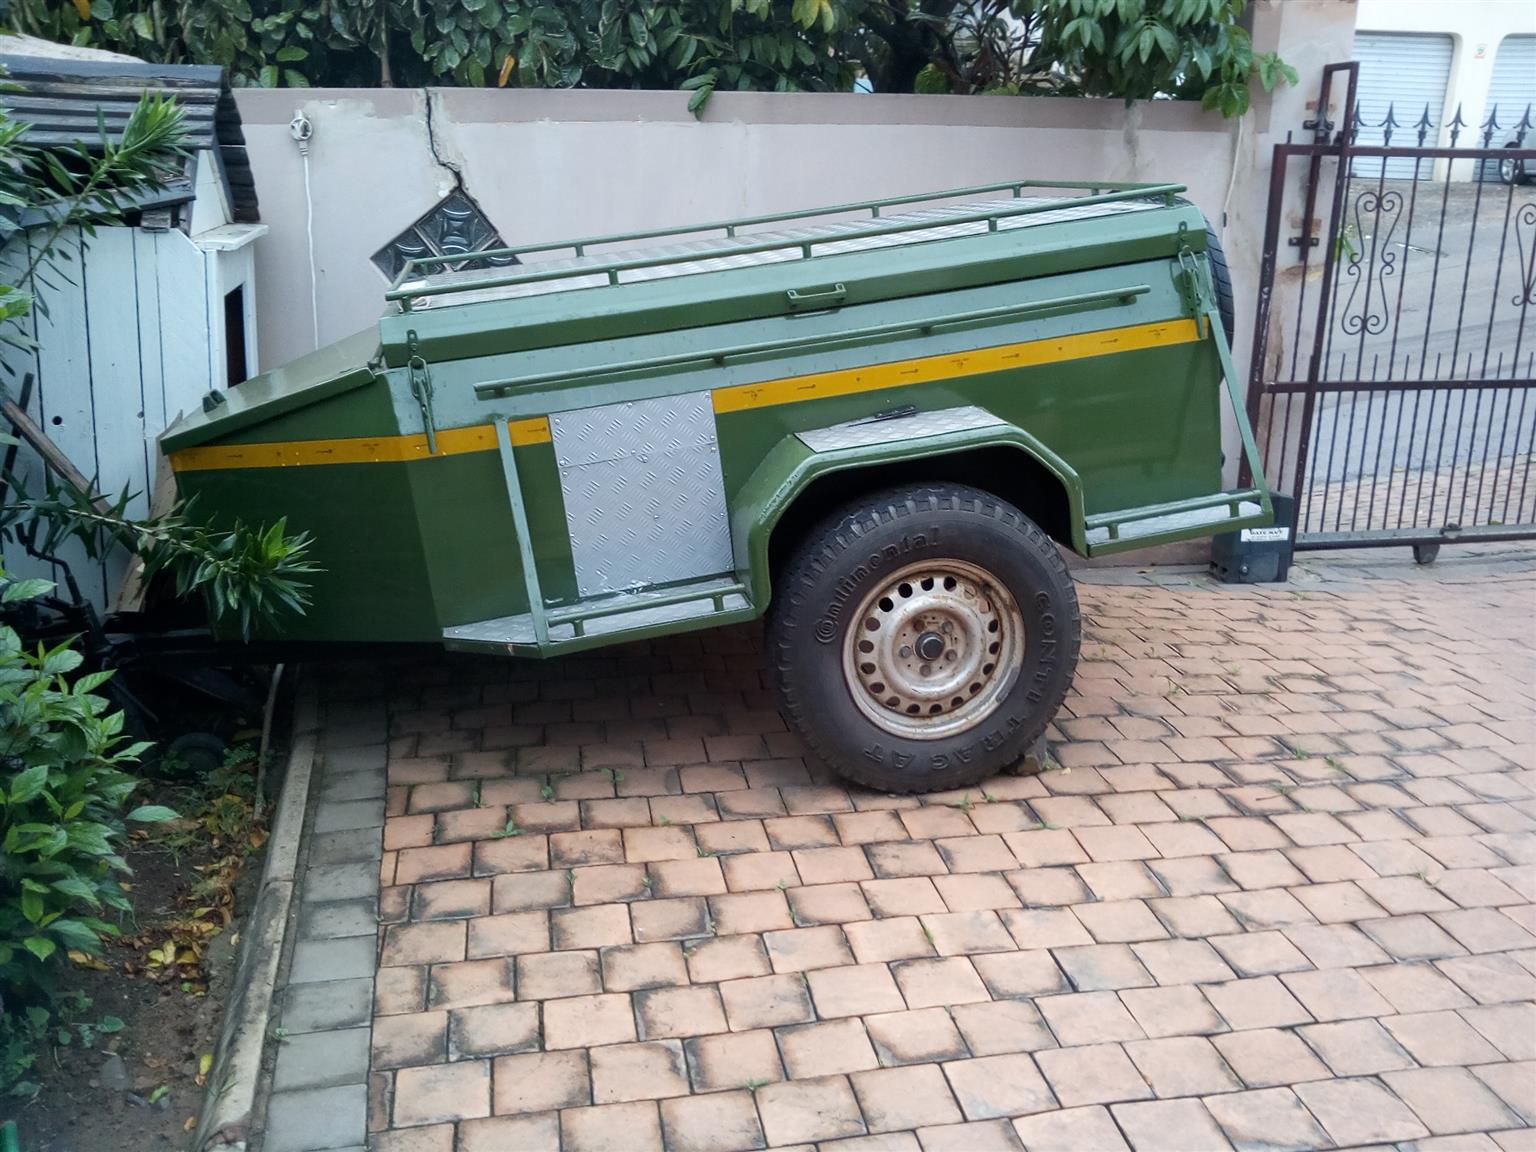 Camping Trailer for sale to swop for a quad bike or a small vehicle